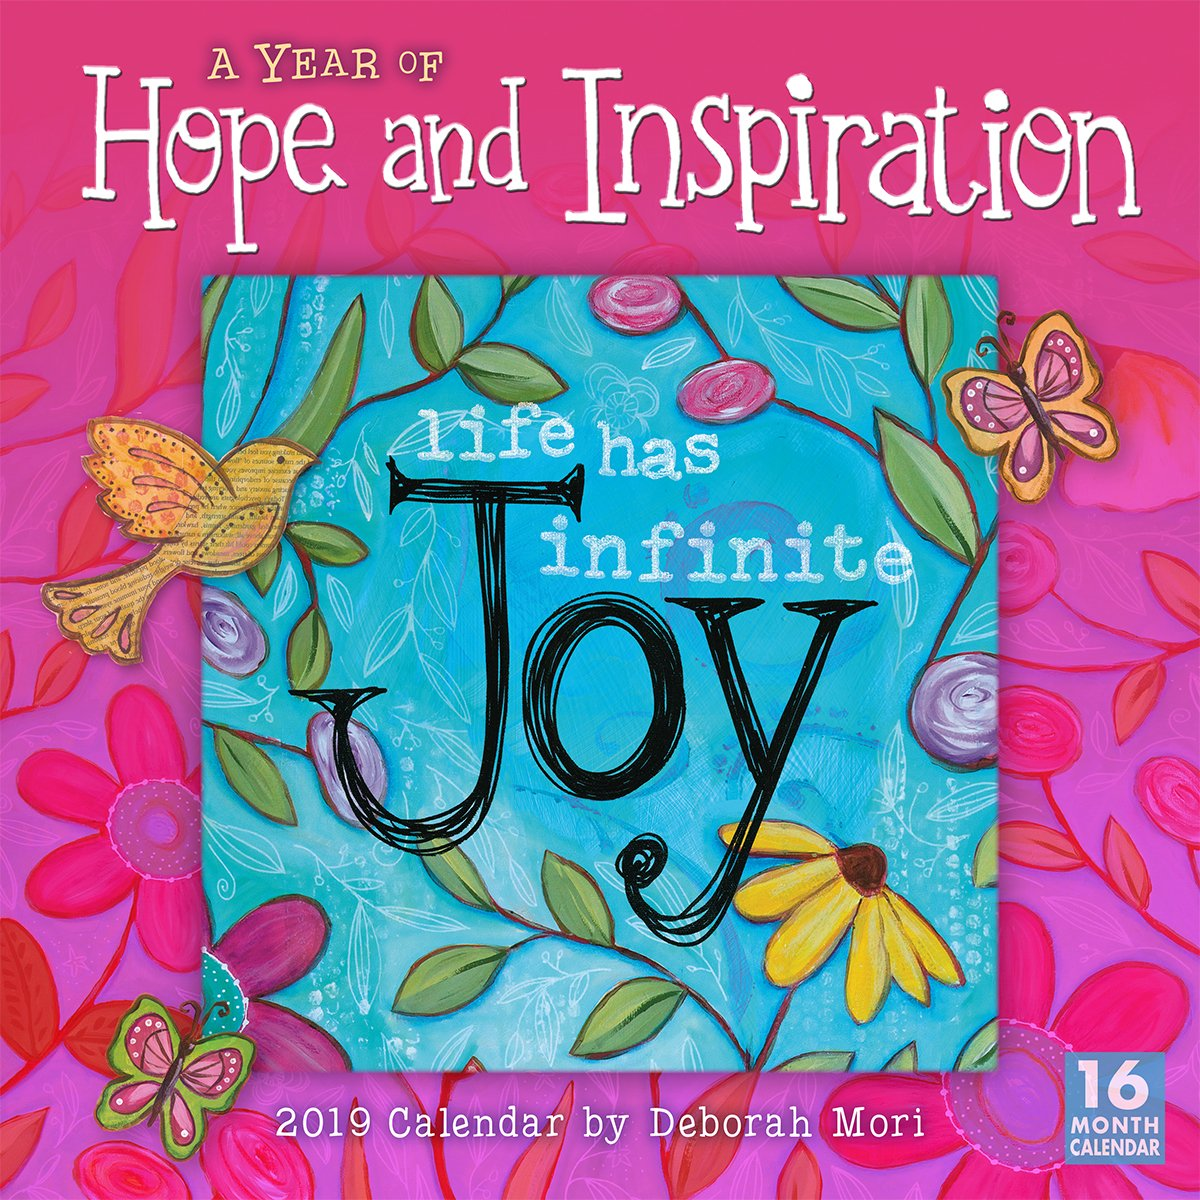 2019 A Year of Hope and Inspiration 16-Month Wall Calendar: by Sellers Publishing, 12x12 (CA-0417) Calendar – Wall Calendar, Aug 15 2018 Deb Mori Inc. 1531904173 /